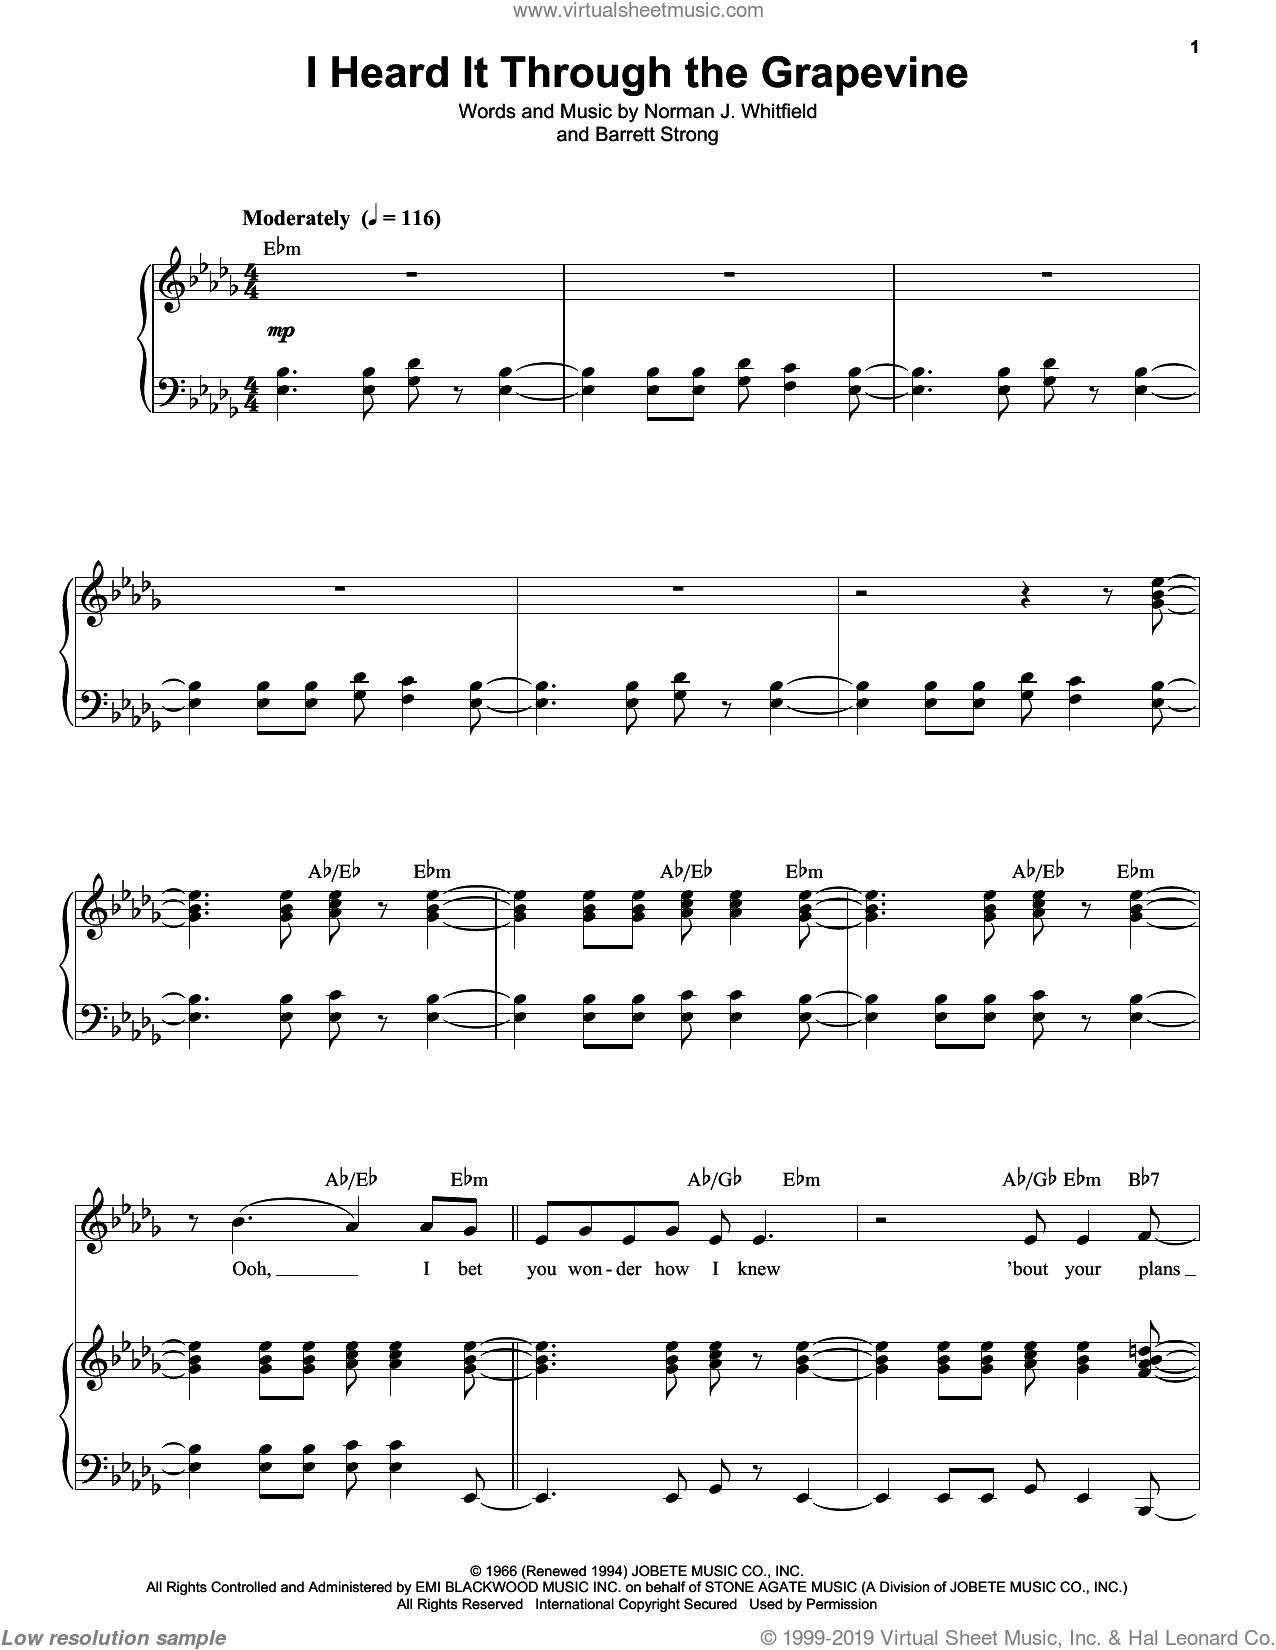 I Heard It Through The Grapevine sheet music for voice and piano by Norman Whitfield